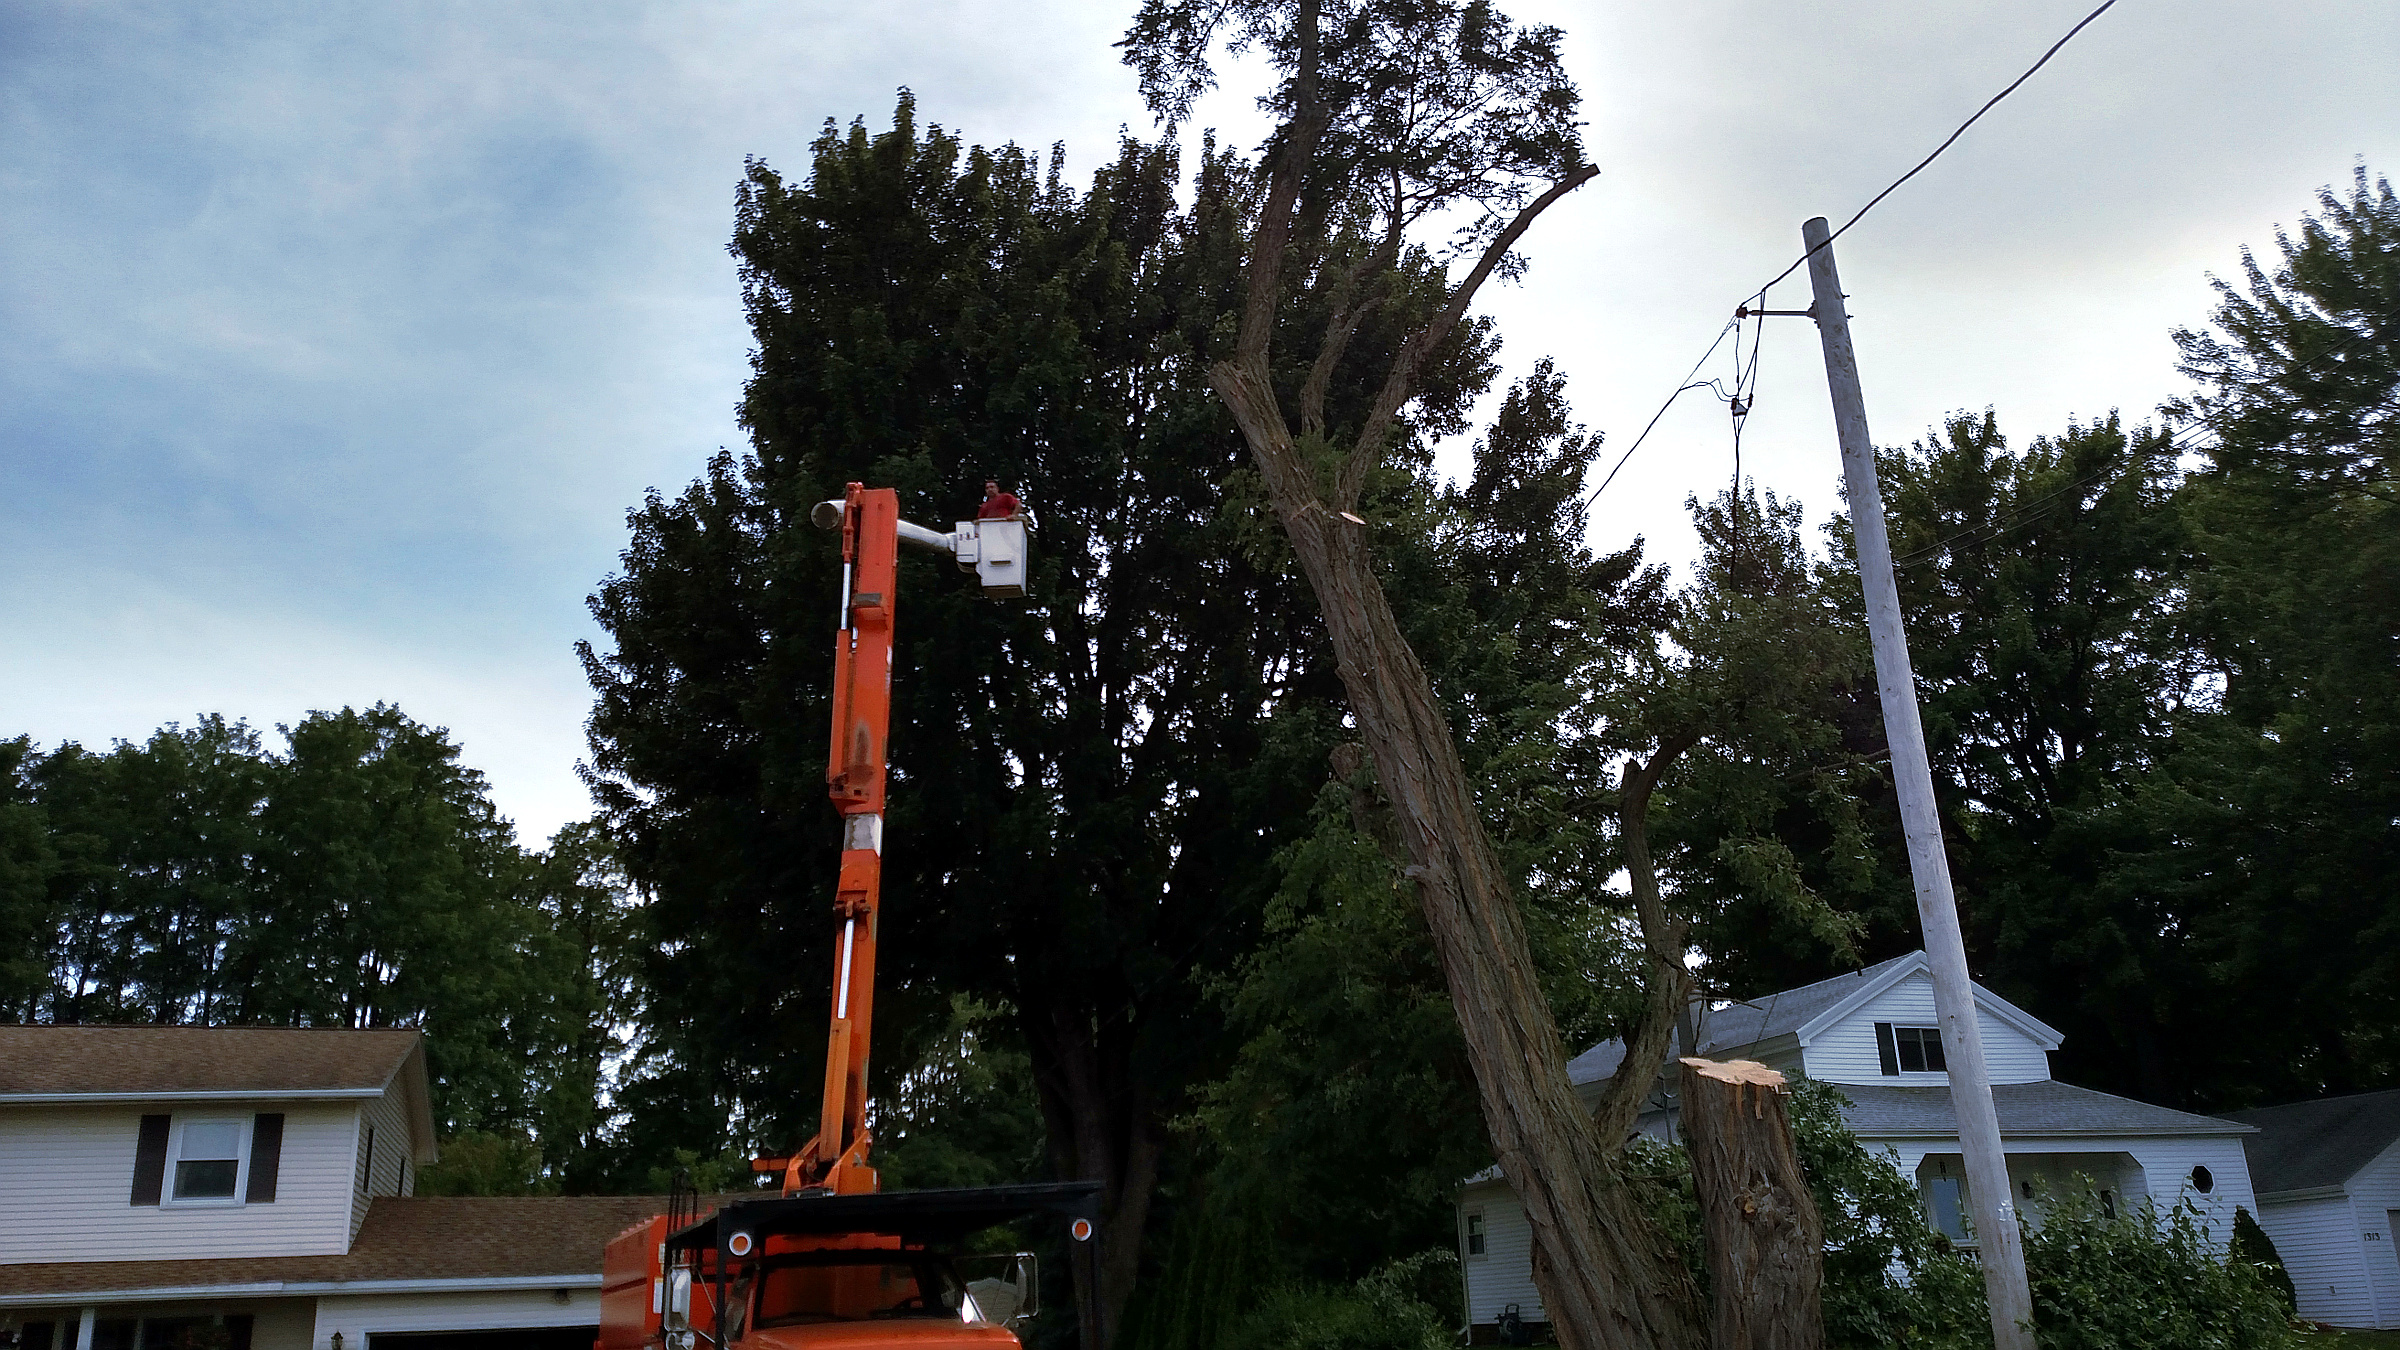 Tree Care Experts use Professional Forestry Equipment - ArborScaper Tree & Landscape - large